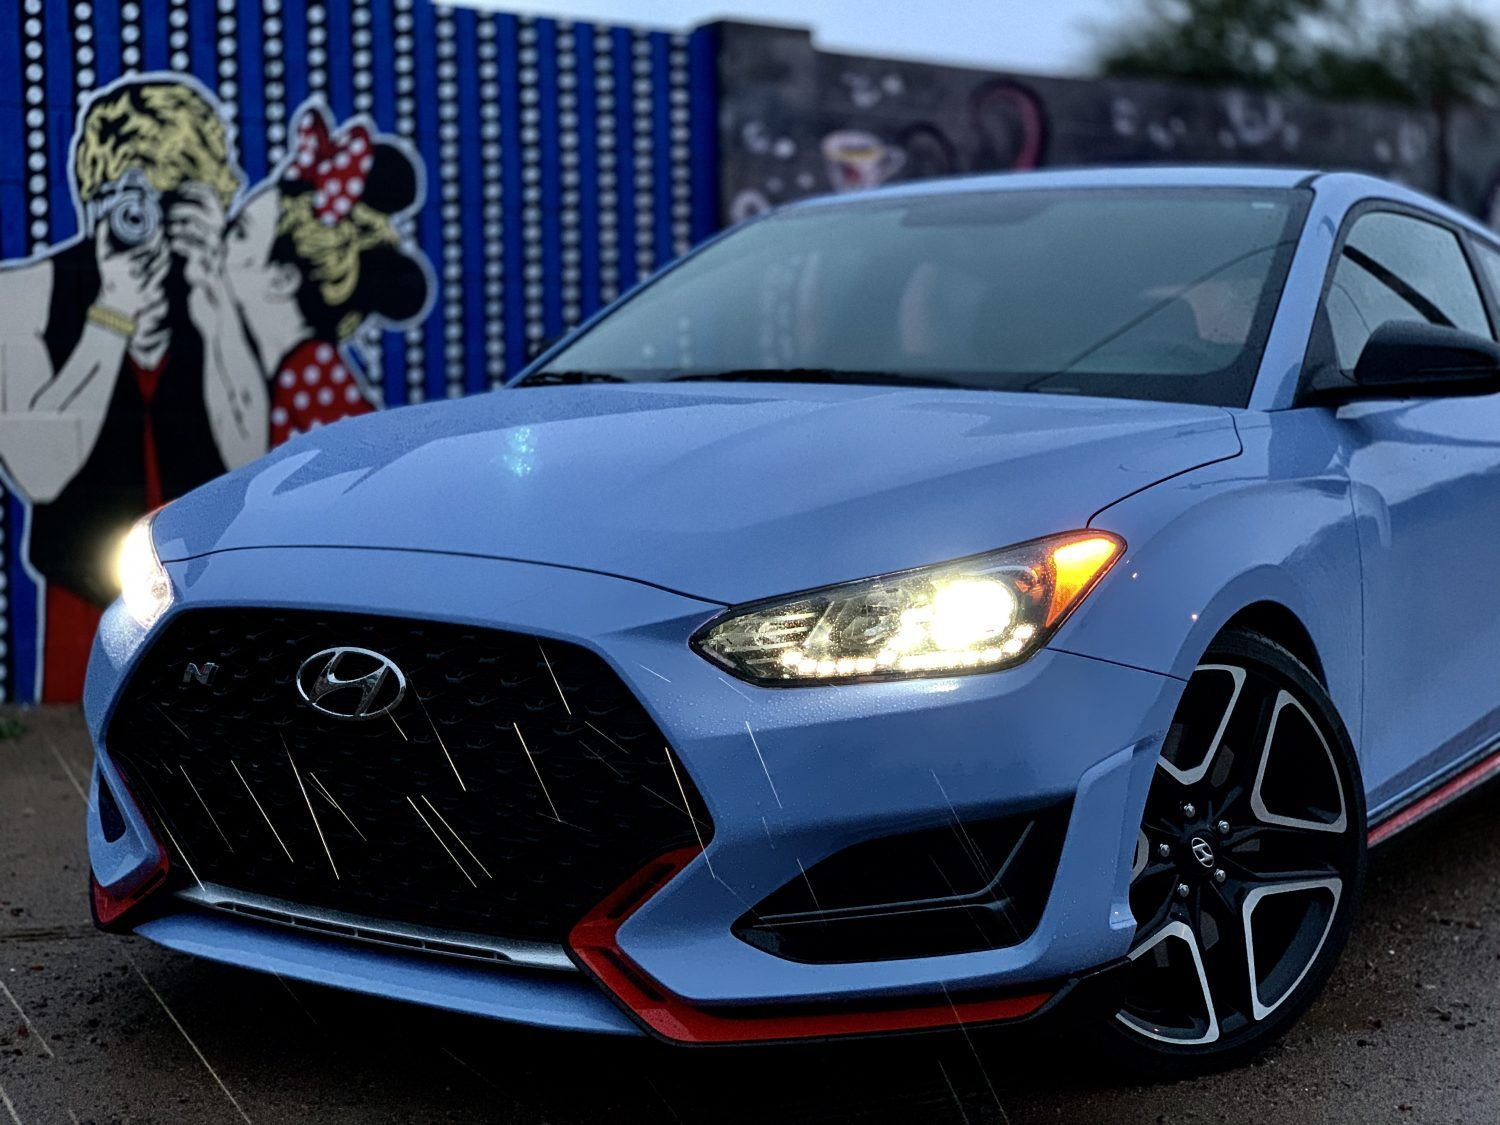 The 2019 Hyundai Veloster N is a fresh faced hot hatch